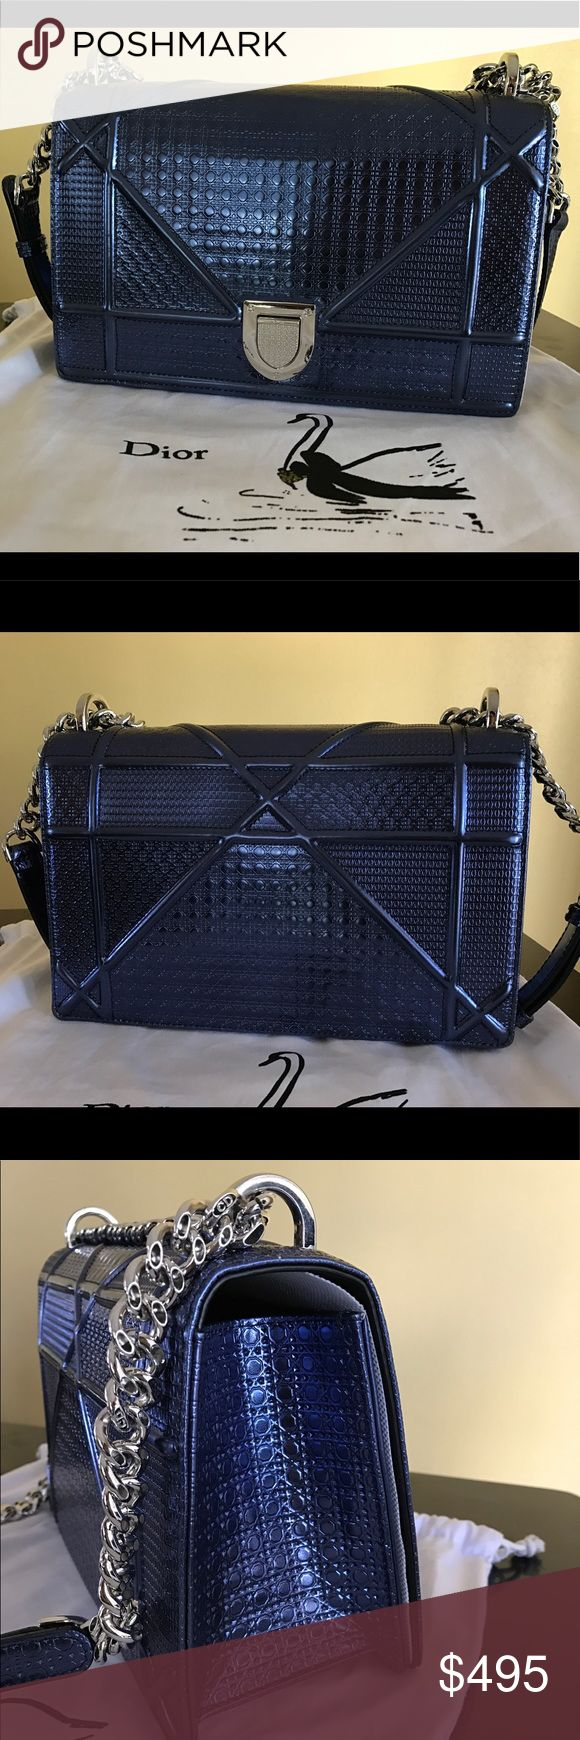 Dior Diorama Metallic Bag Gently used. Very gorgeous bag. Super amazing quality, very closed to the real one. Comes with dust bag. Let me know of you need to see more pics. PRICE FIRMED. NO TRADE. Thank you! Bags